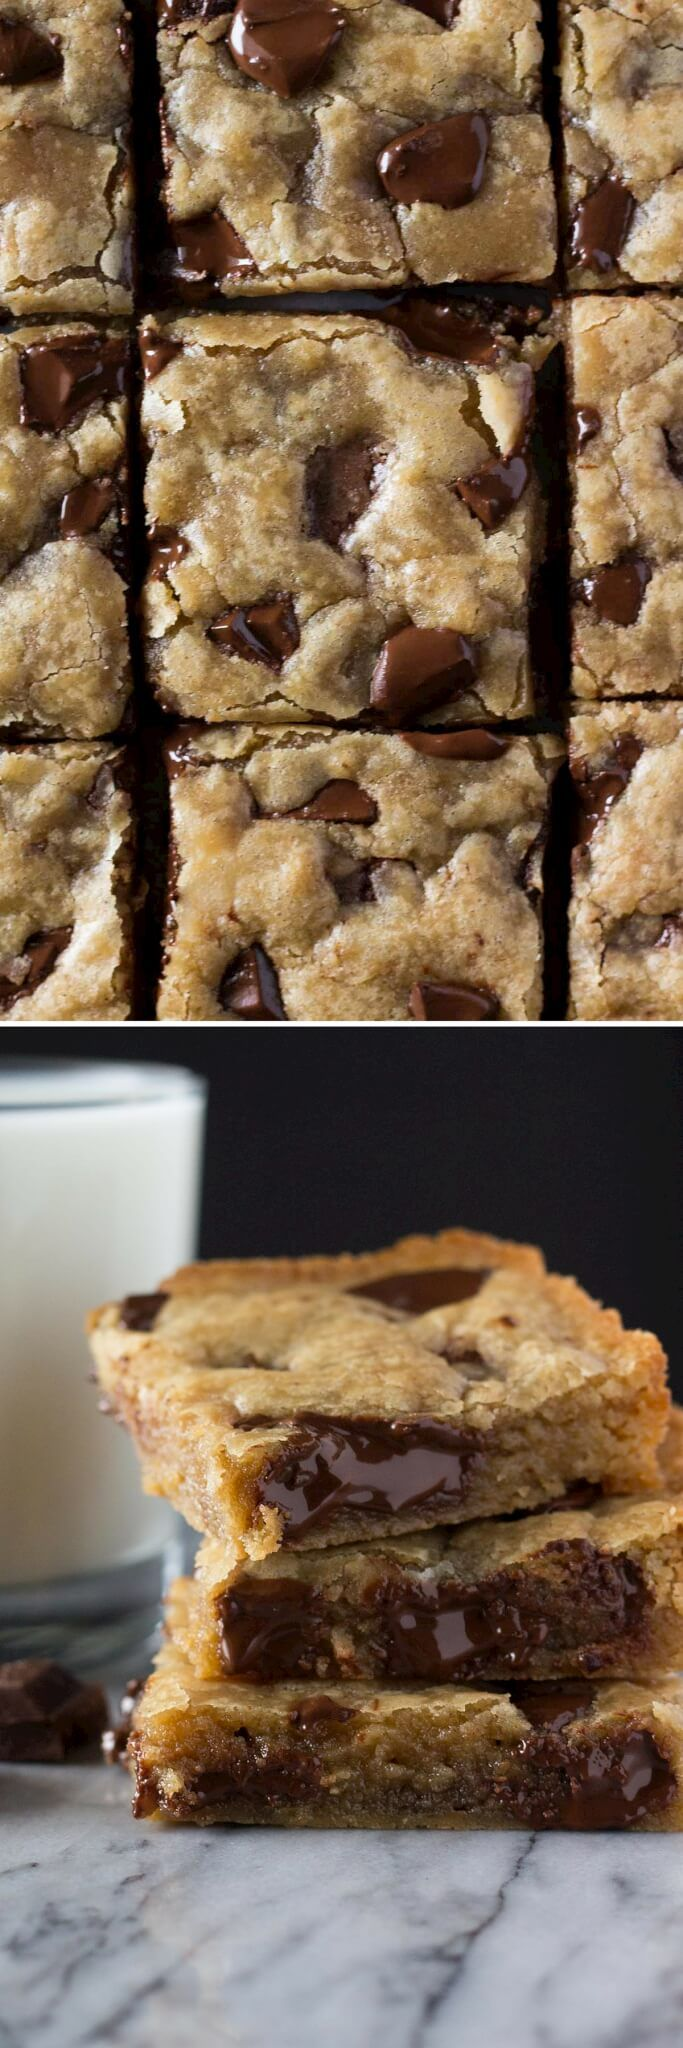 Brown butter & Dark Chocolate Chunks come together in these AMAZING blondies. No mixer, one bowl & ridiculously delicious!